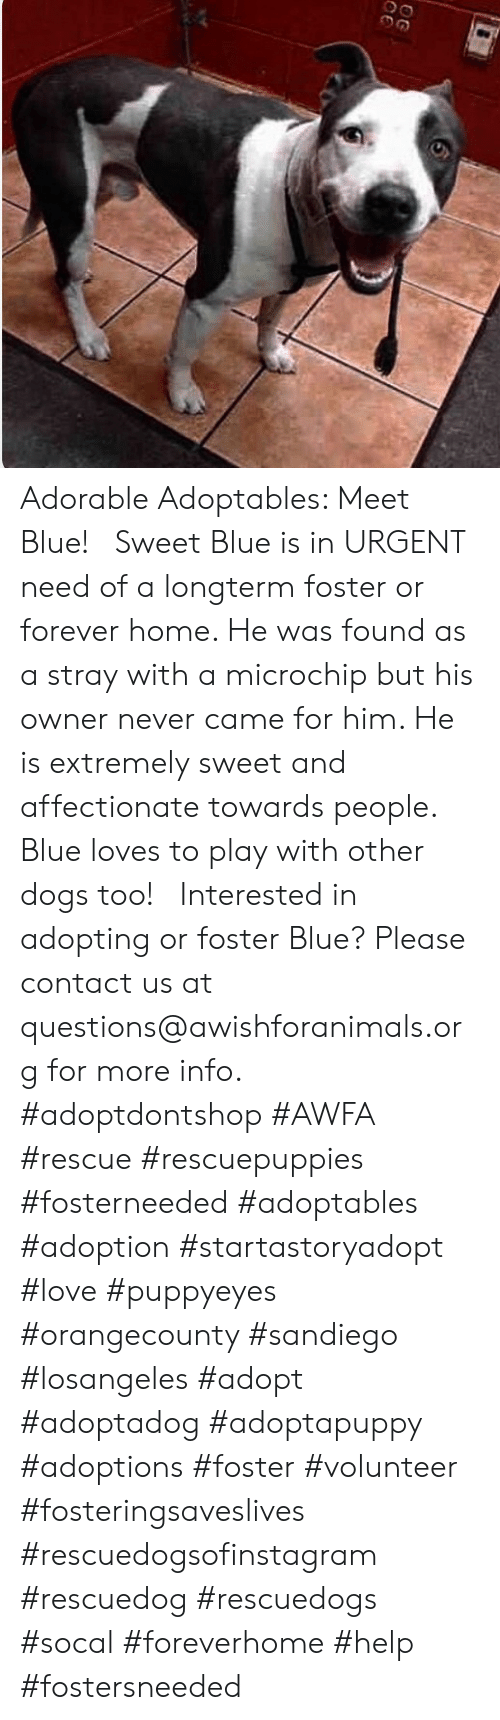 Dogs, Love, and Memes: OG Adorable Adoptables: Meet Blue!   Sweet Blue is in URGENT need of a longterm foster or forever home. He was found as a stray with a microchip but his owner never came for him. He is extremely sweet and affectionate towards people. Blue loves to play with other dogs too!   Interested in adopting or foster Blue? Please contact us at questions@awishforanimals.org for more info.  #adoptdontshop #AWFA #rescue #rescuepuppies #fosterneeded #adoptables #adoption #startastoryadopt #love #puppyeyes #orangecounty #sandiego #losangeles #adopt #adoptadog #adoptapuppy #adoptions #foster #volunteer #fosteringsaveslives #rescuedogsofinstagram #rescuedog #rescuedogs #socal #foreverhome #help #fostersneeded